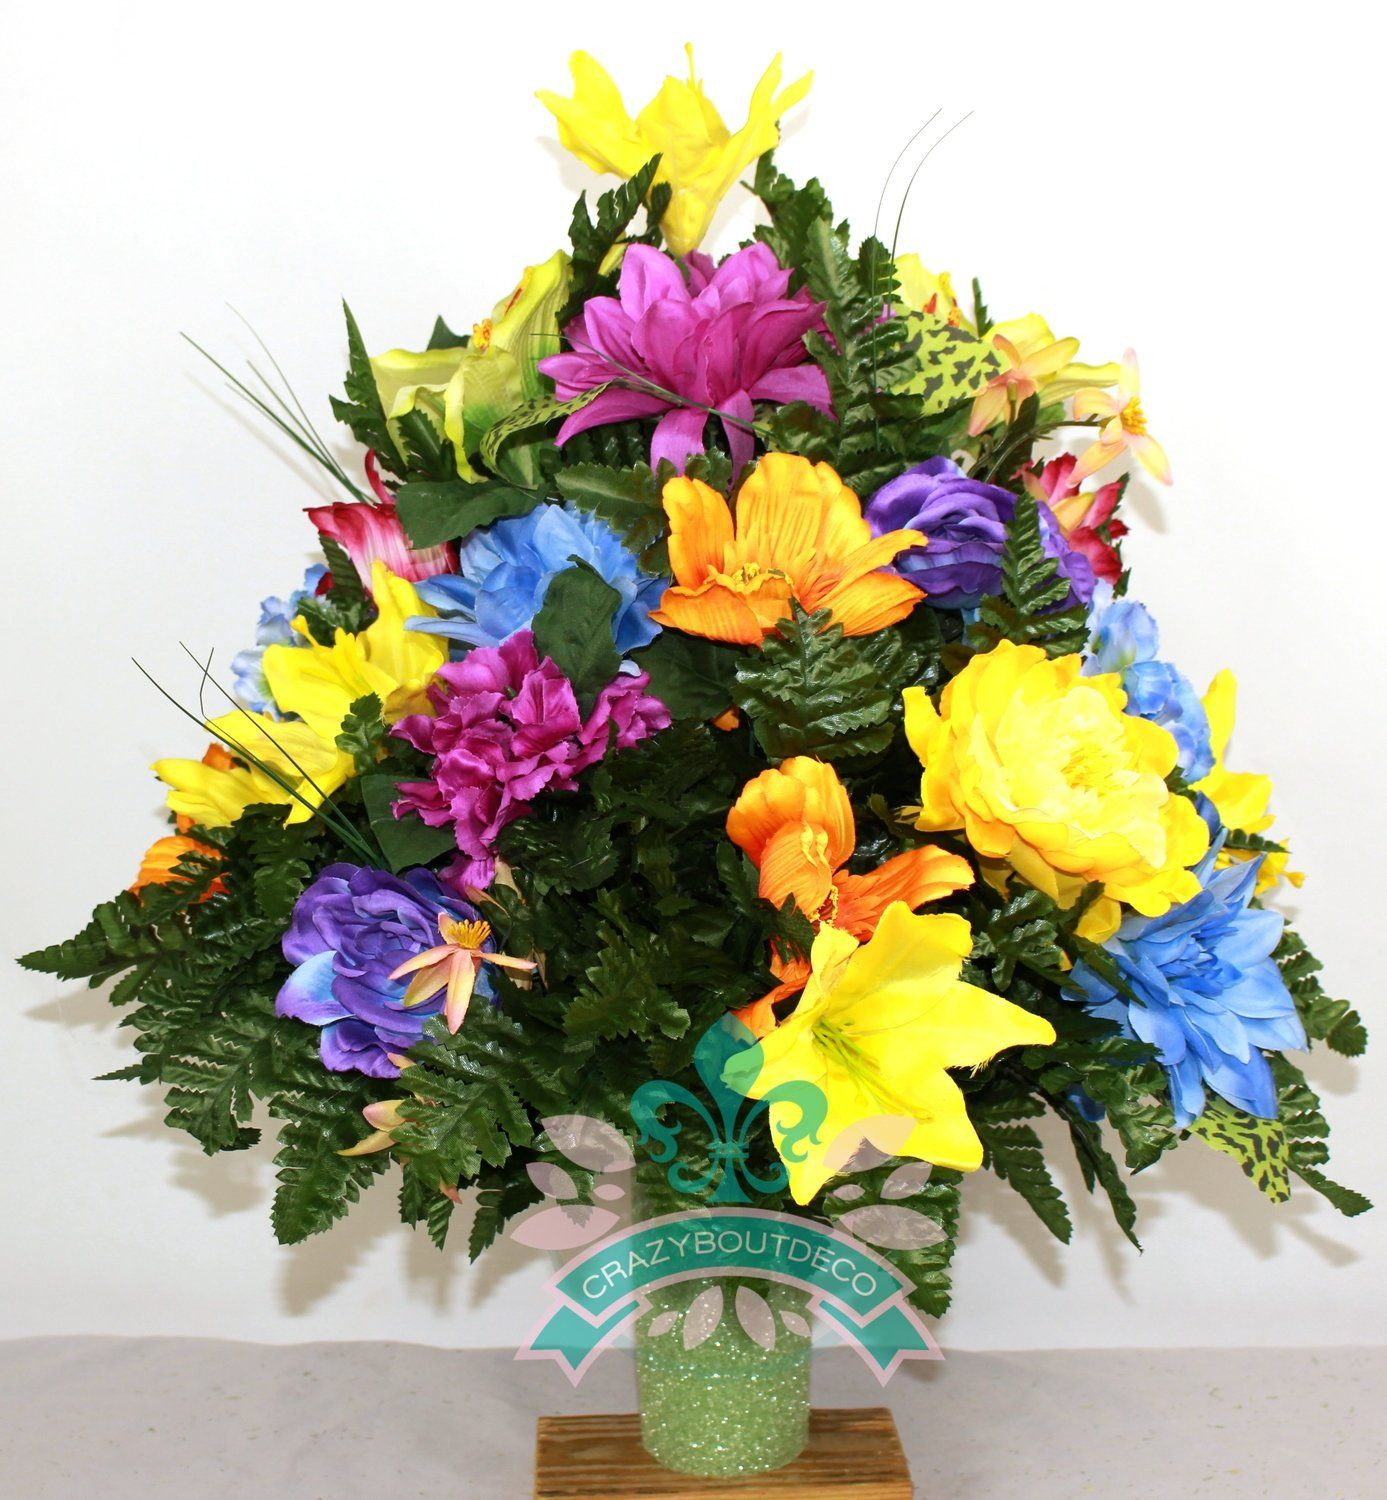 Stay In the Vase Cemetery Flowers Of Beautiful Xl Spring Mixture Cemetery Vase Arrangement for 3 Inch with Regard to Beautiful Xl Spring Mixture Cemetery Vase Arrangement for 3 Inch Vase 42 99